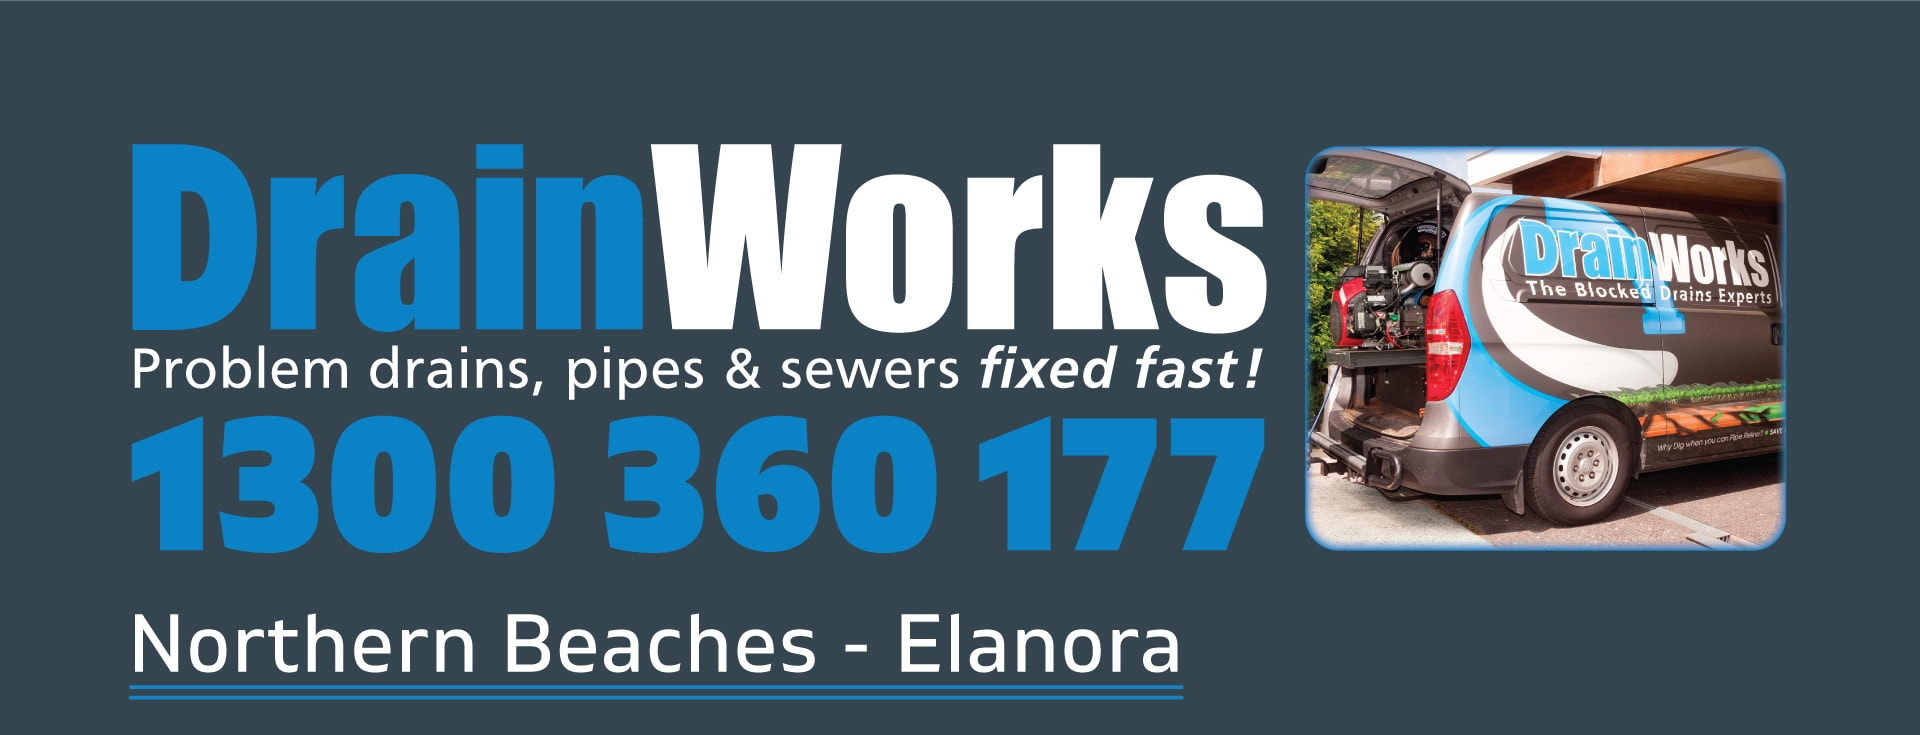 DrainWorks – Elanora Heights – Northern Beaches Sydney